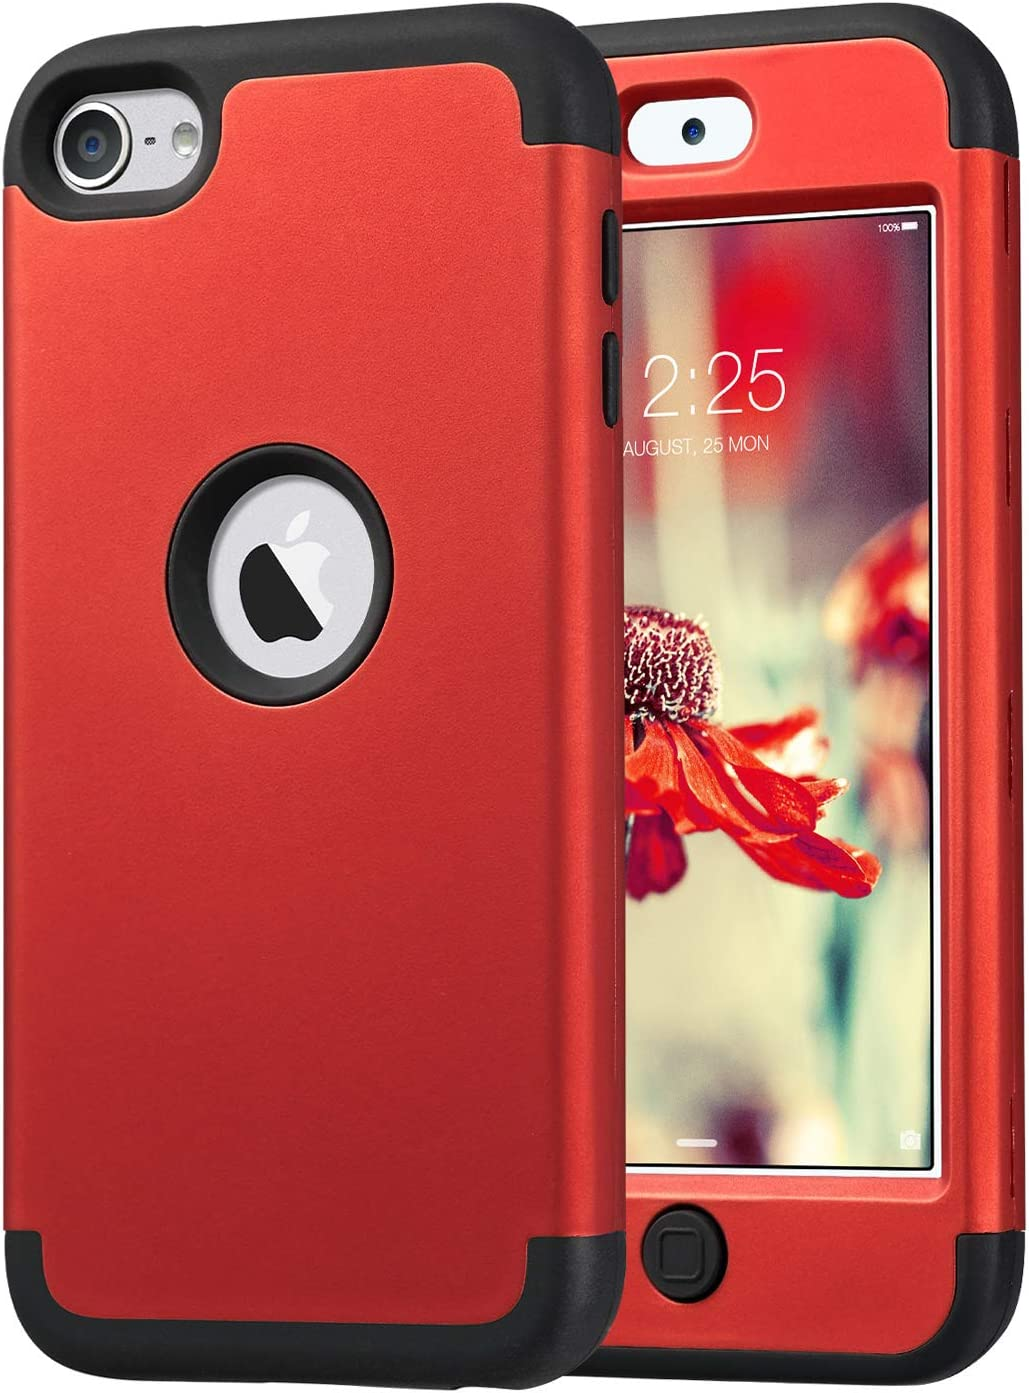 ULAK iPod Touch 7 Case, iPod Touch 6 Case, Heavy Duty High Impact Shockproof Dual Layer Protective Case for Apple iPod Touch 7th/6th/5th Generation (Red+Black)